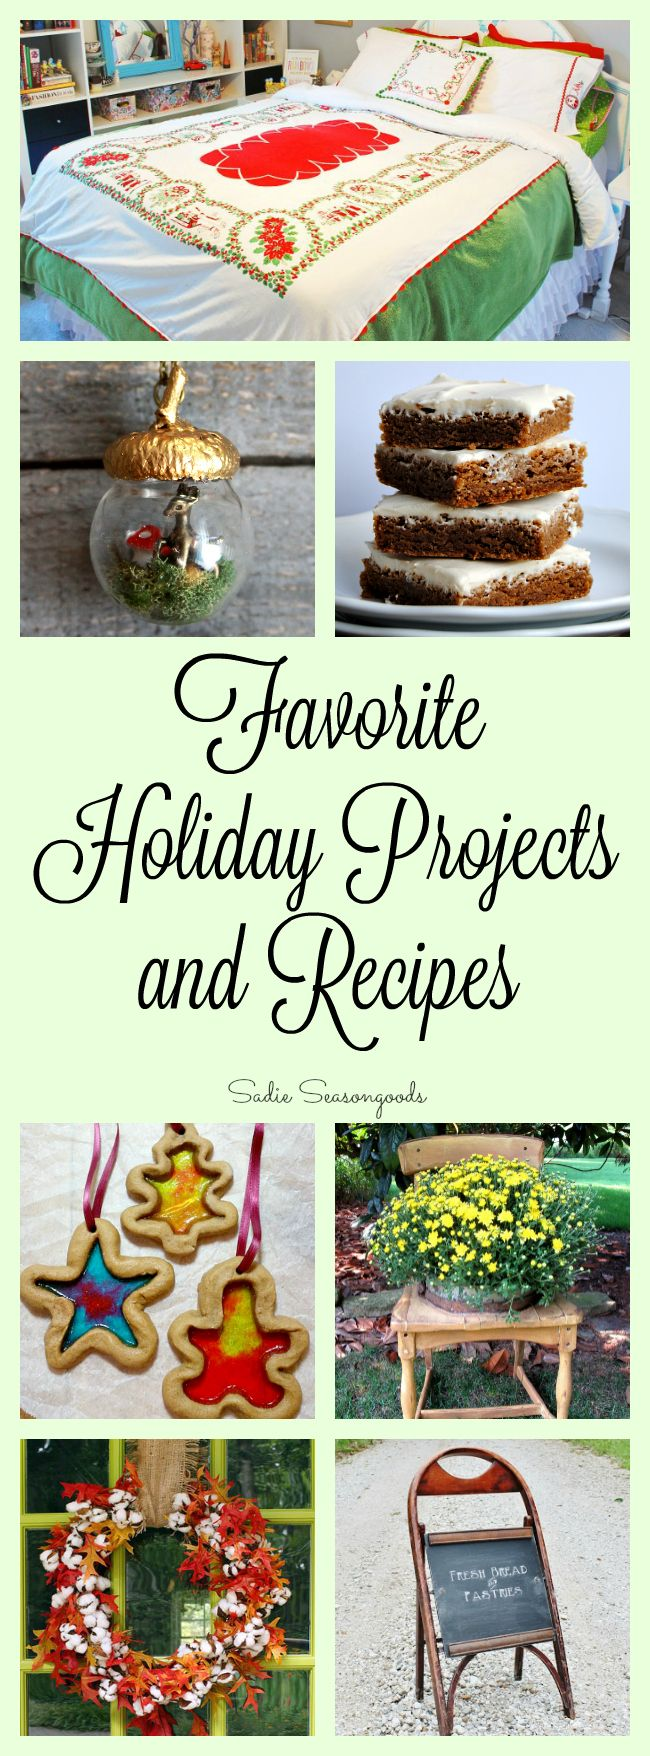 You're one-stop-post for autumn and winter holiday recipes and projects- RIGHT HERE! A fun collection of Thanksgiving and Christmas (or seasonally) themed DIY crafts and tasty things to make and bake, from a bevy of *AMAZING* bloggers.  #SadieSeasongoods